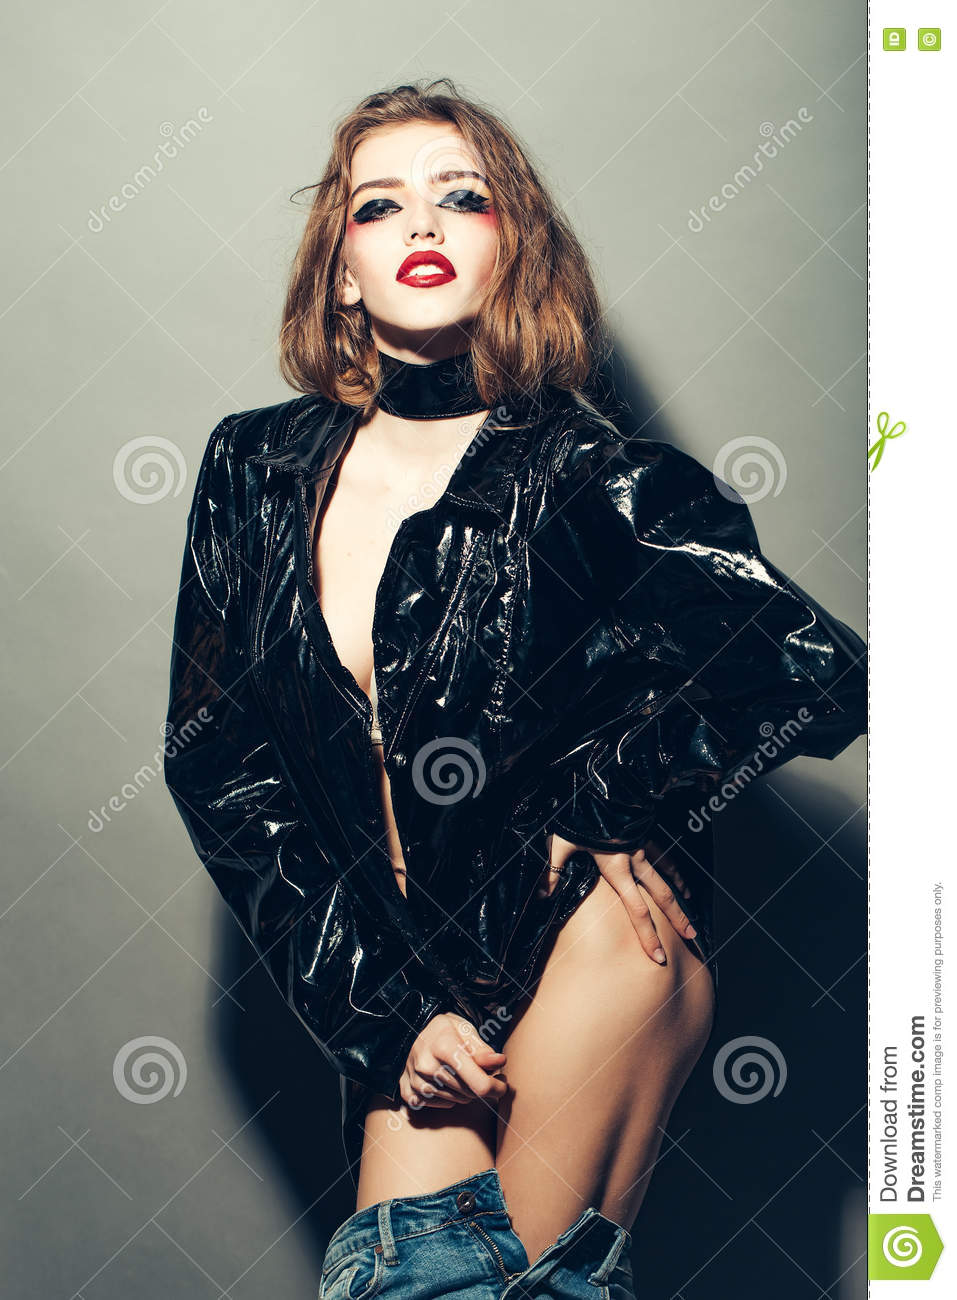 Pretty Woman In Leather Jacket Stock Photo - Image: 72641897